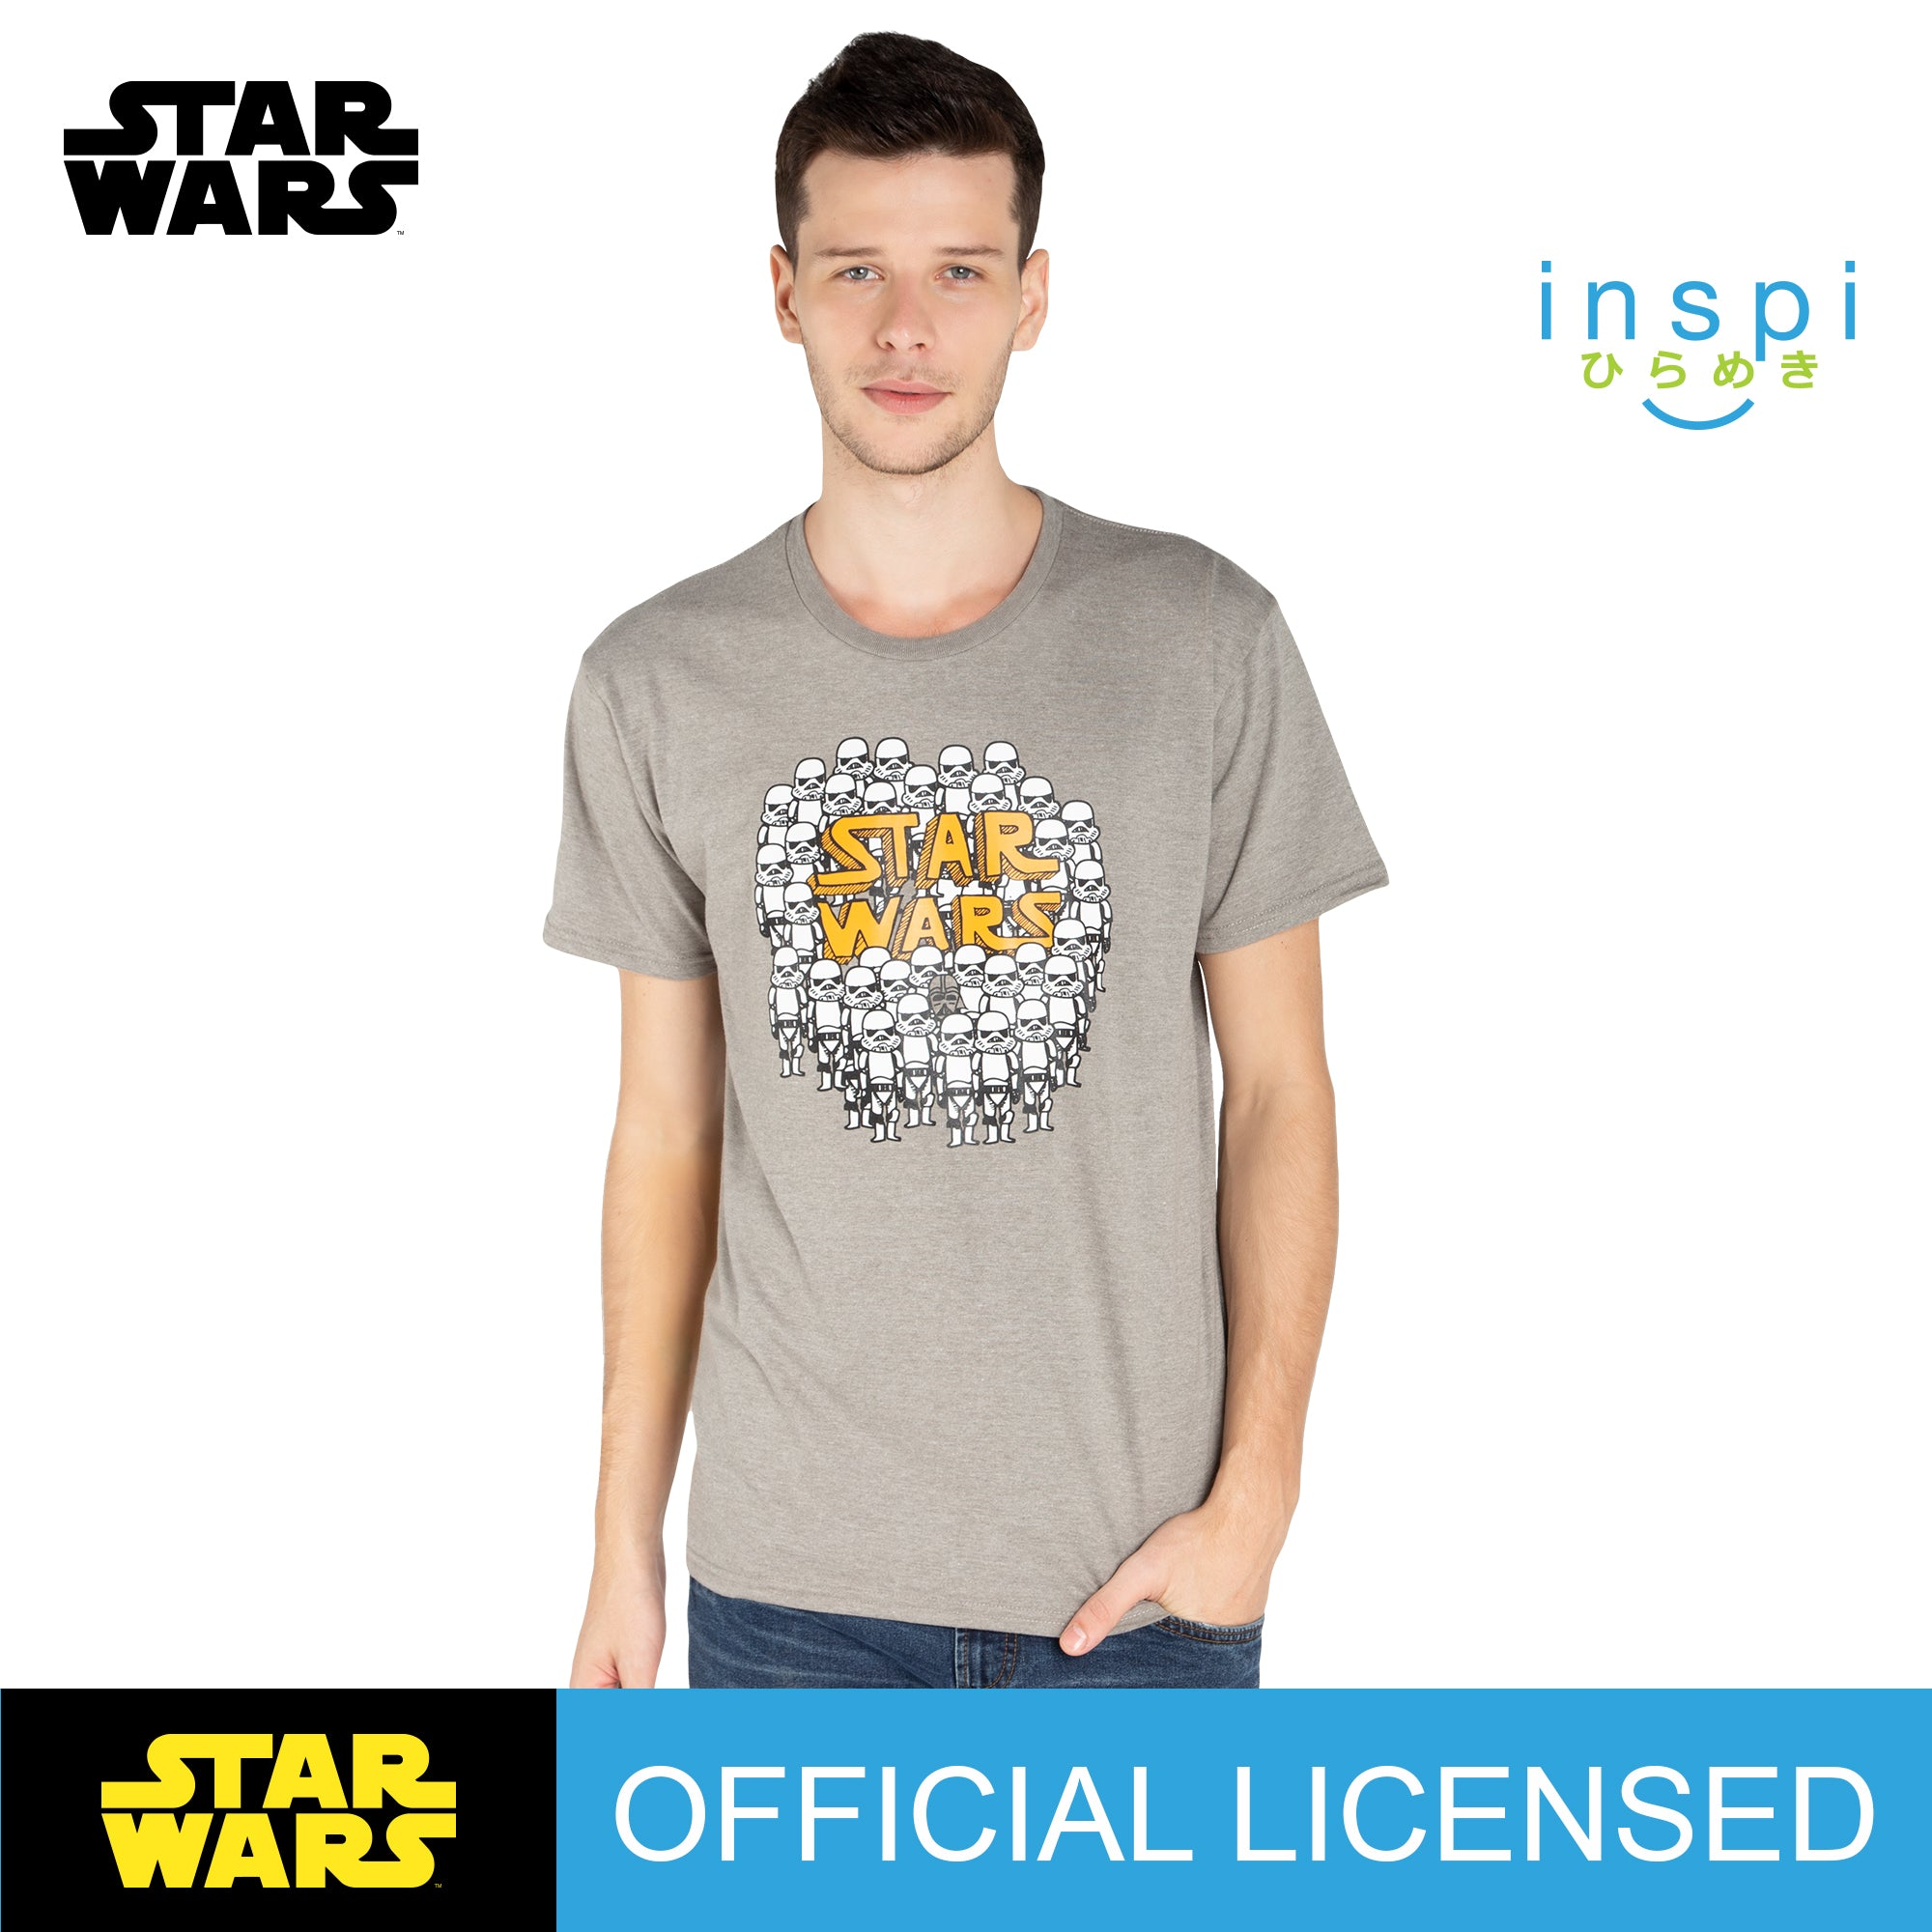 Star Wars Trooper Doodles Graphic Tshirt in Light Gray for Men for Women Inspi Shirt